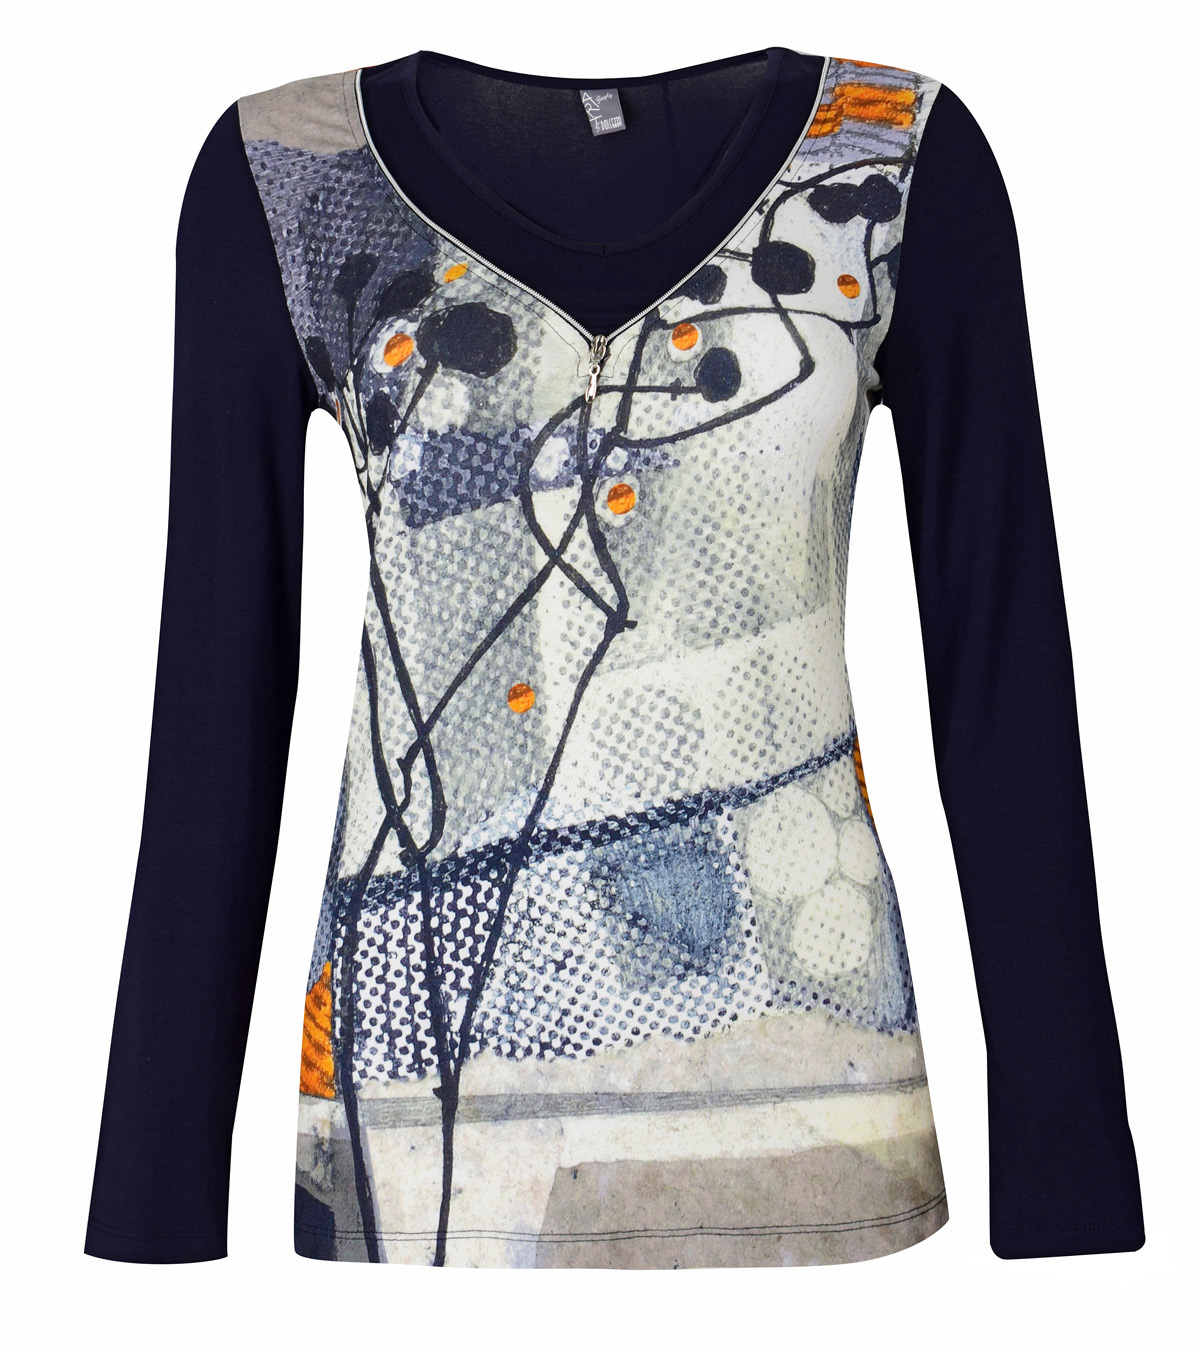 Simply Art Dolcezza: Incredibly Dandy Dragonfly Zip Abstract Art Tunic (2 Left!) Dolcezza_SimplyArt_59693_N